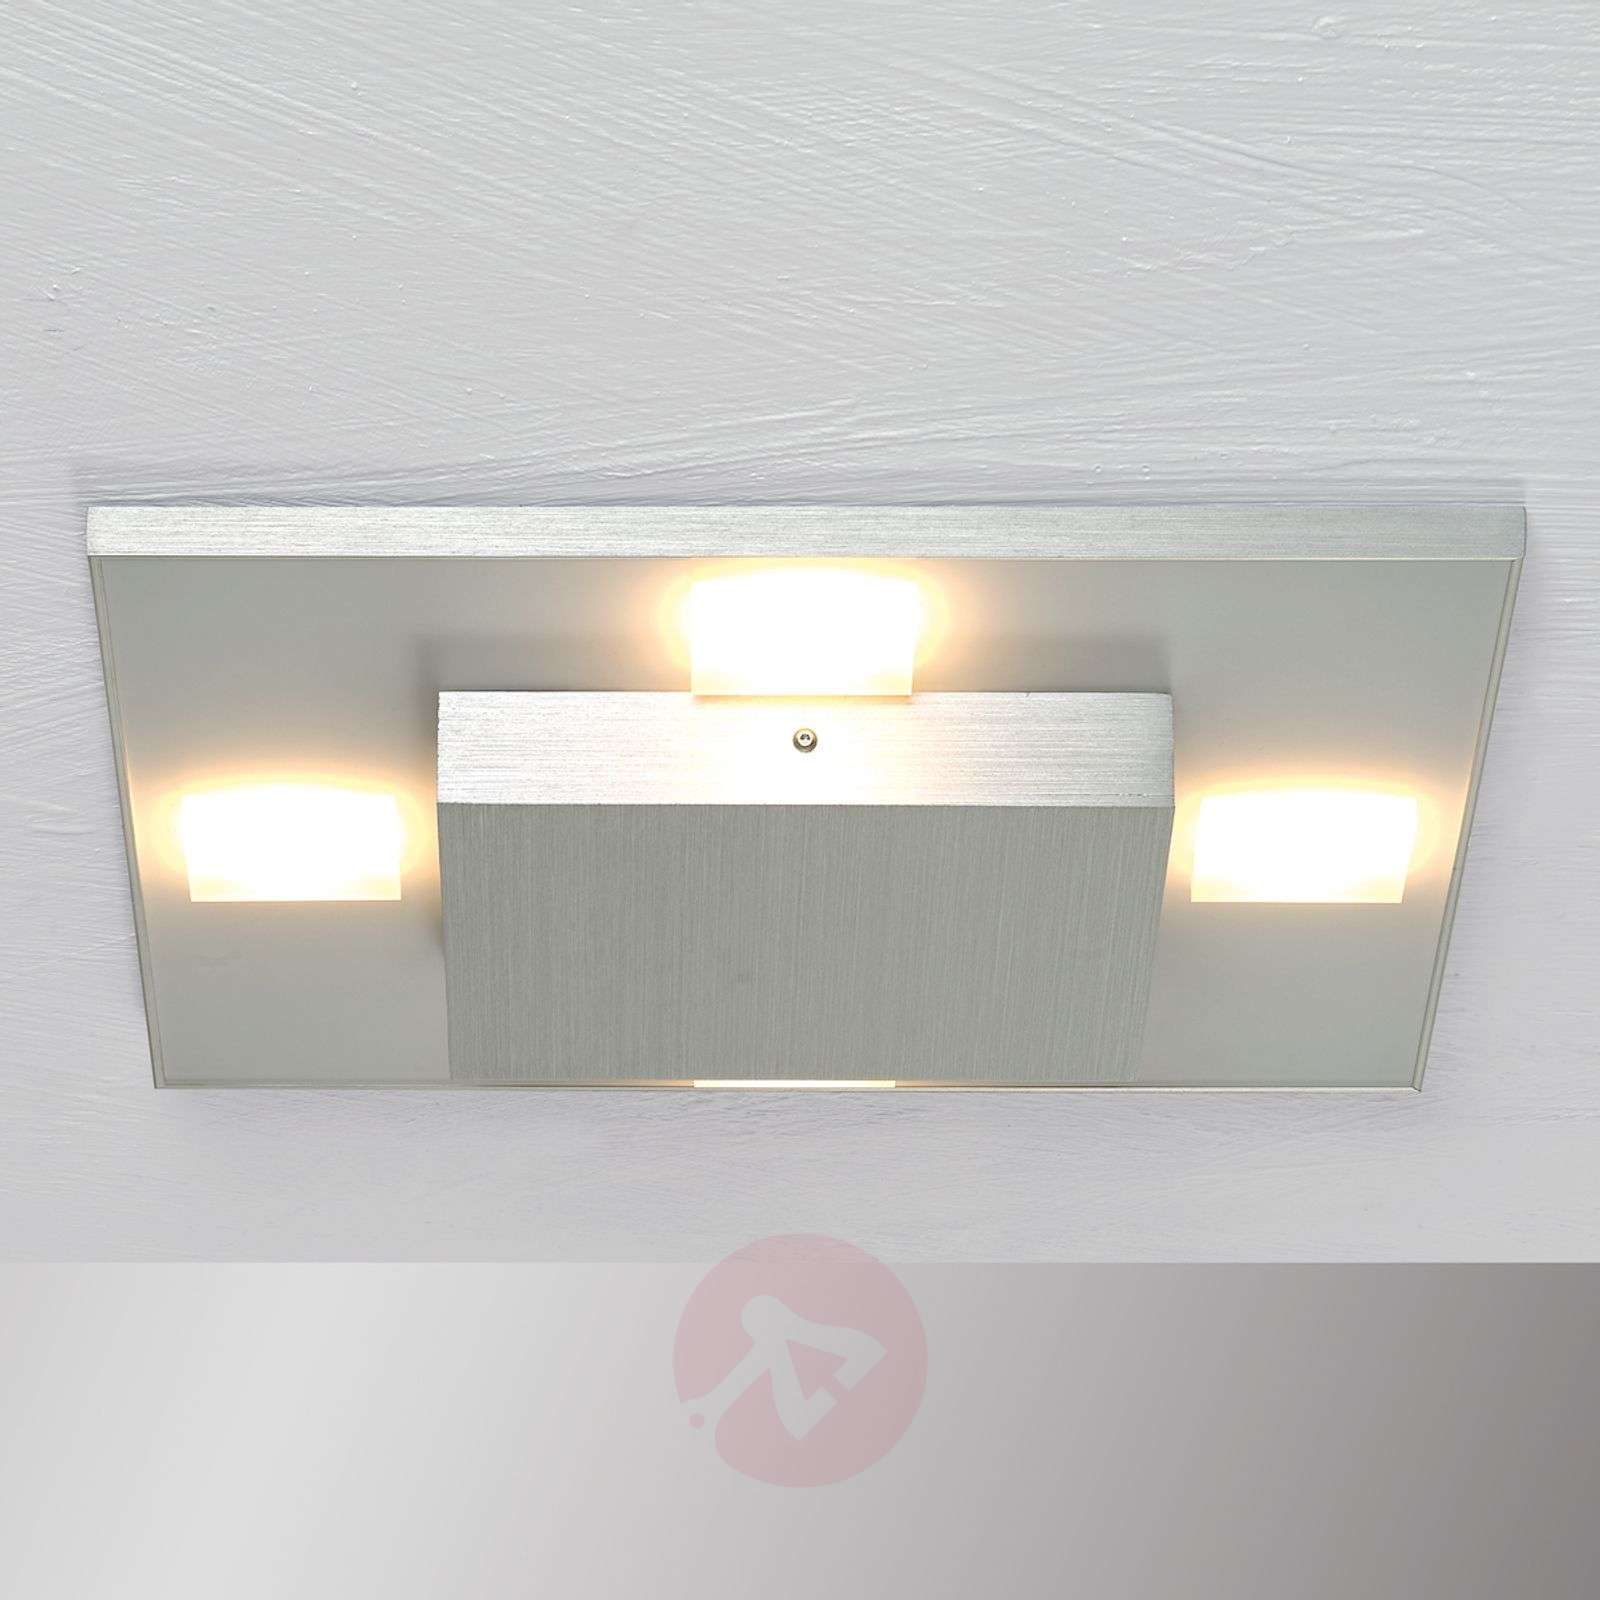 Kwadratowa lampa sufitowa LED Slight, aluminiowa